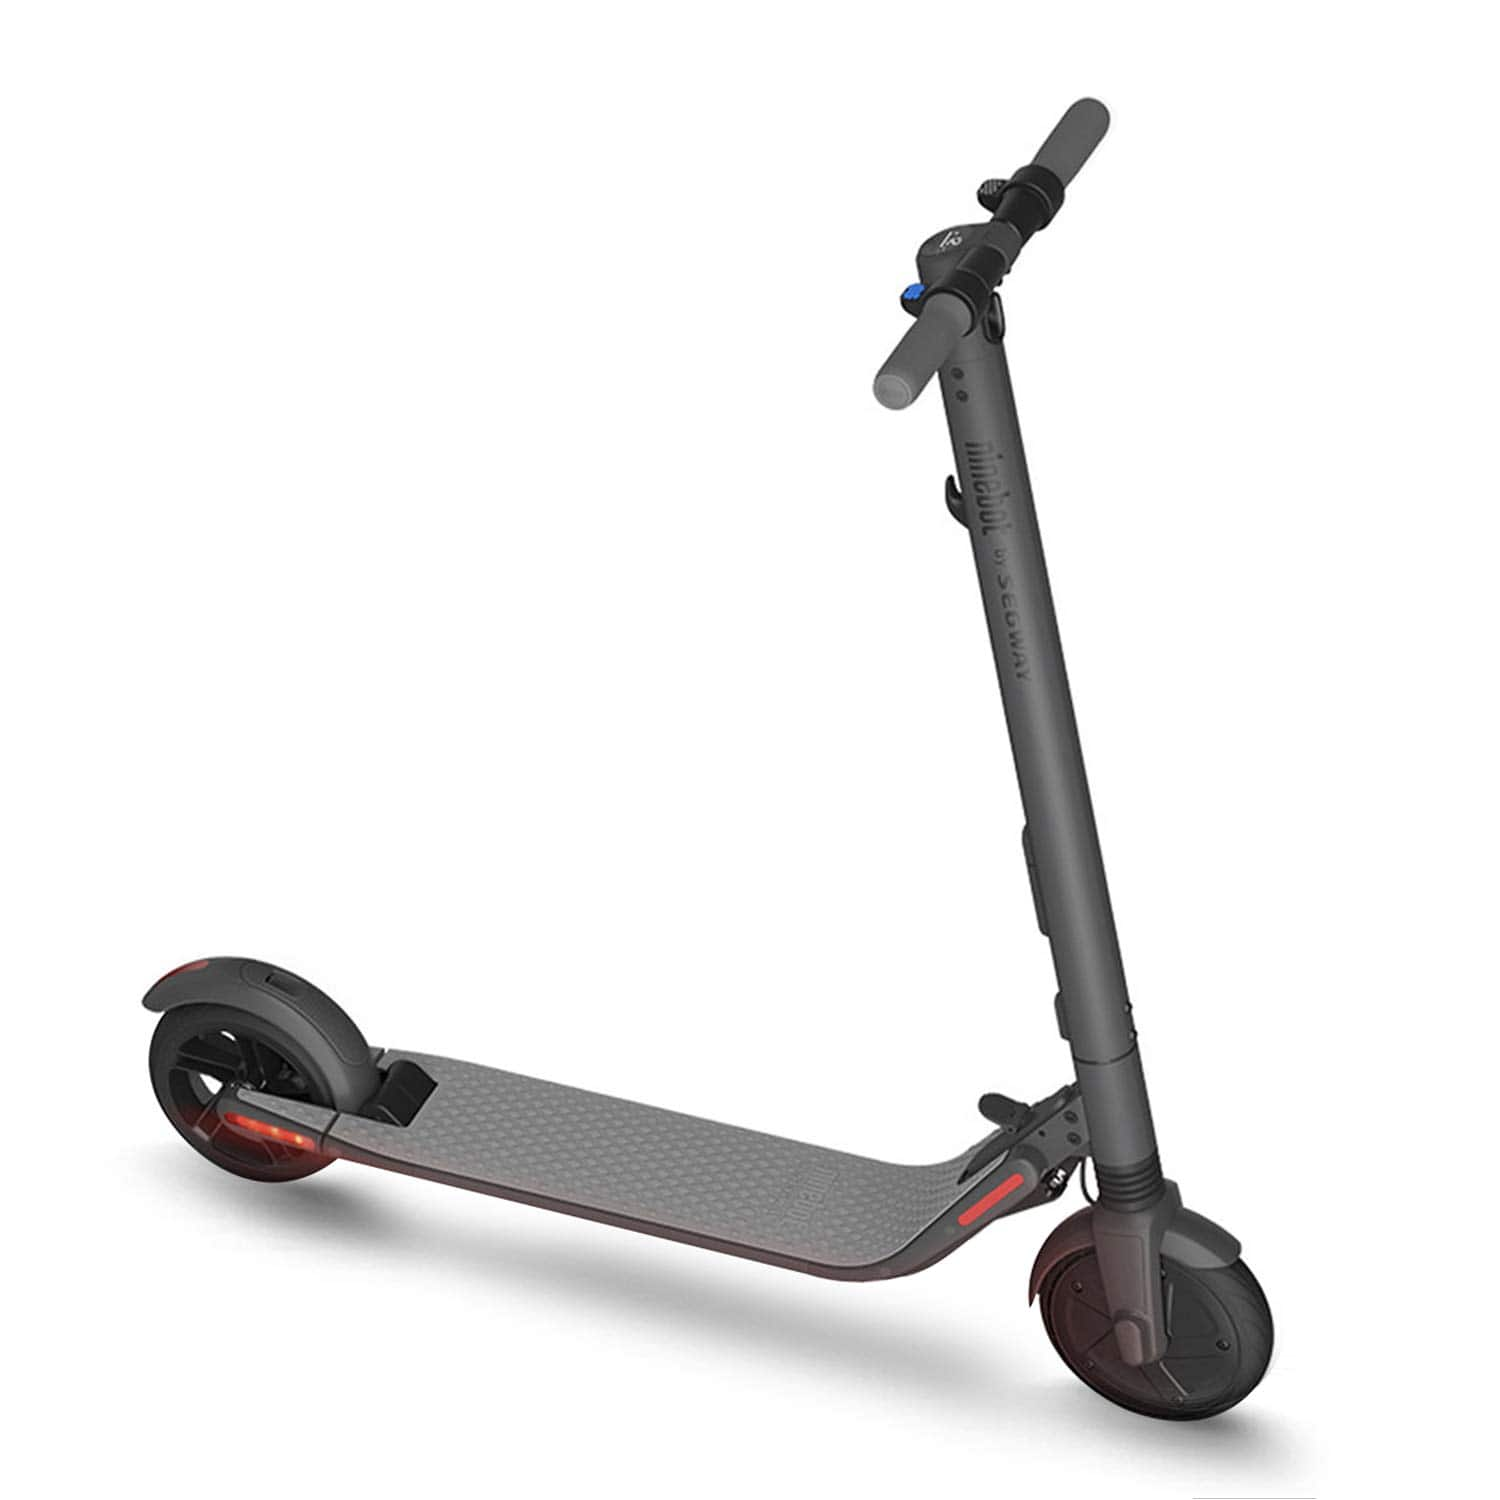 Segway Ninebot ES2 Electric Kick Scooter, Lightweight and Foldable, Upgraded Motor Power, Dark Grey $399.99